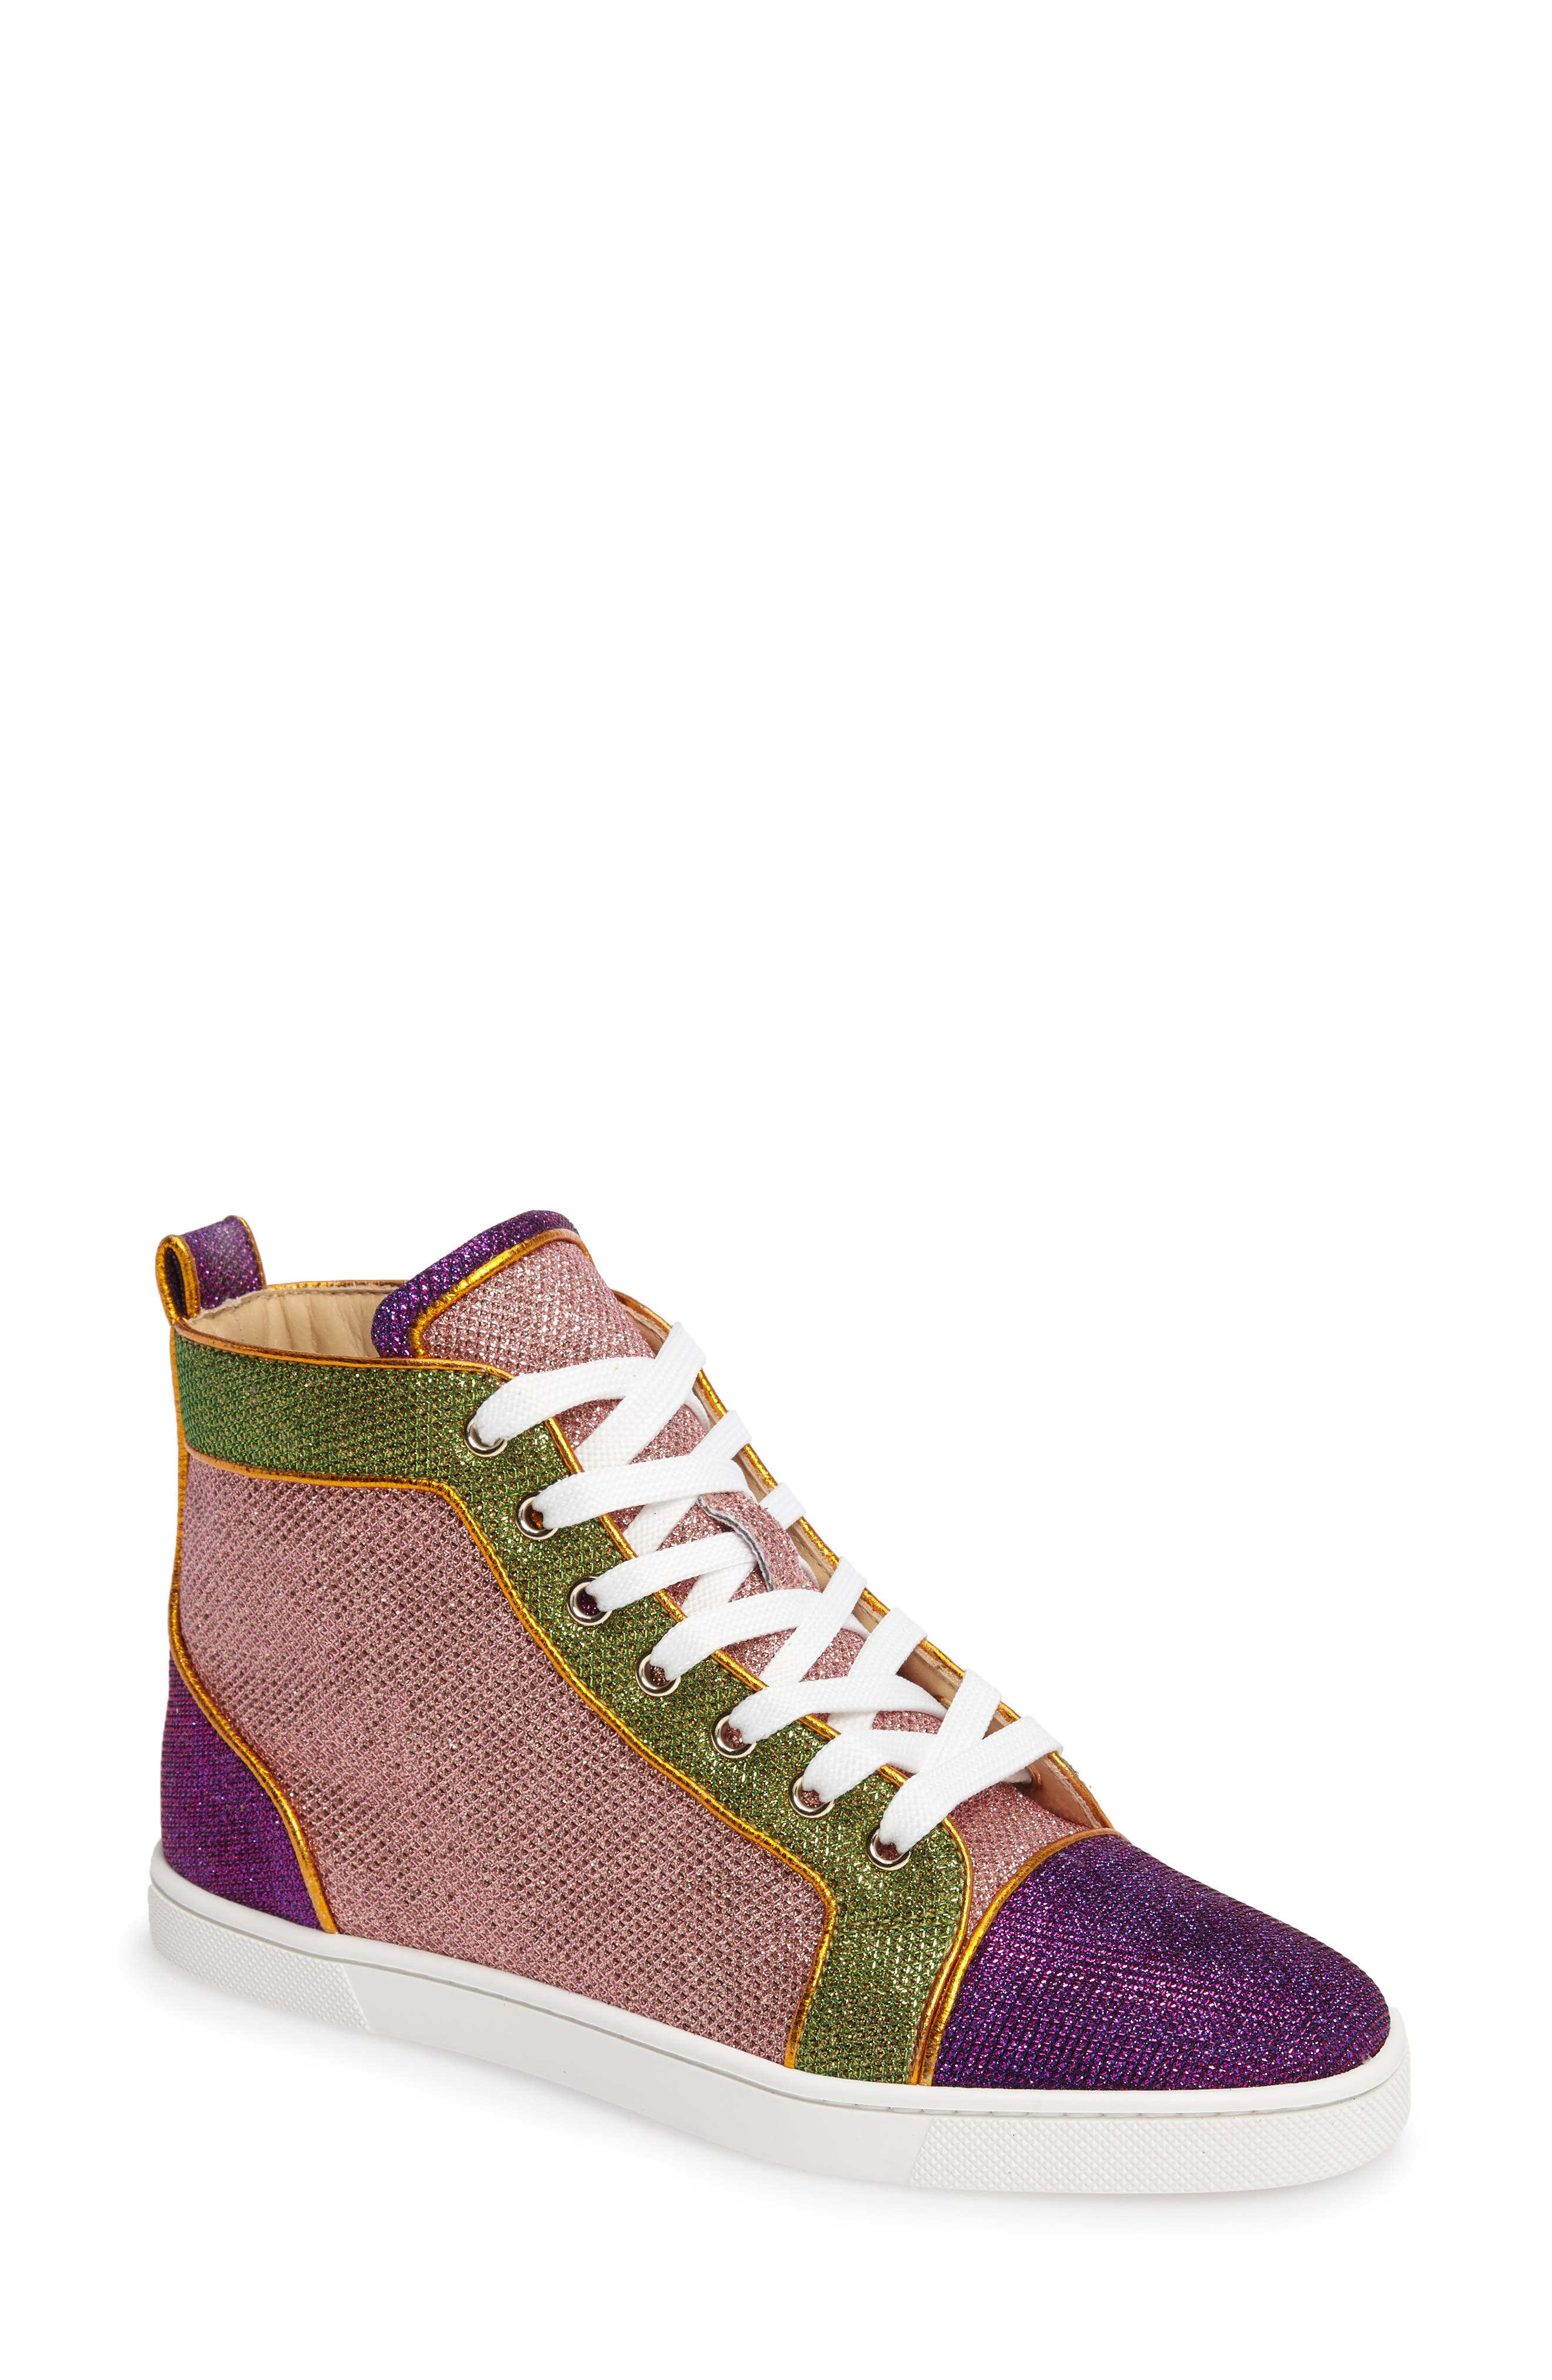 Bip Bip High Top Sneaker,                             Main thumbnail 2, color,